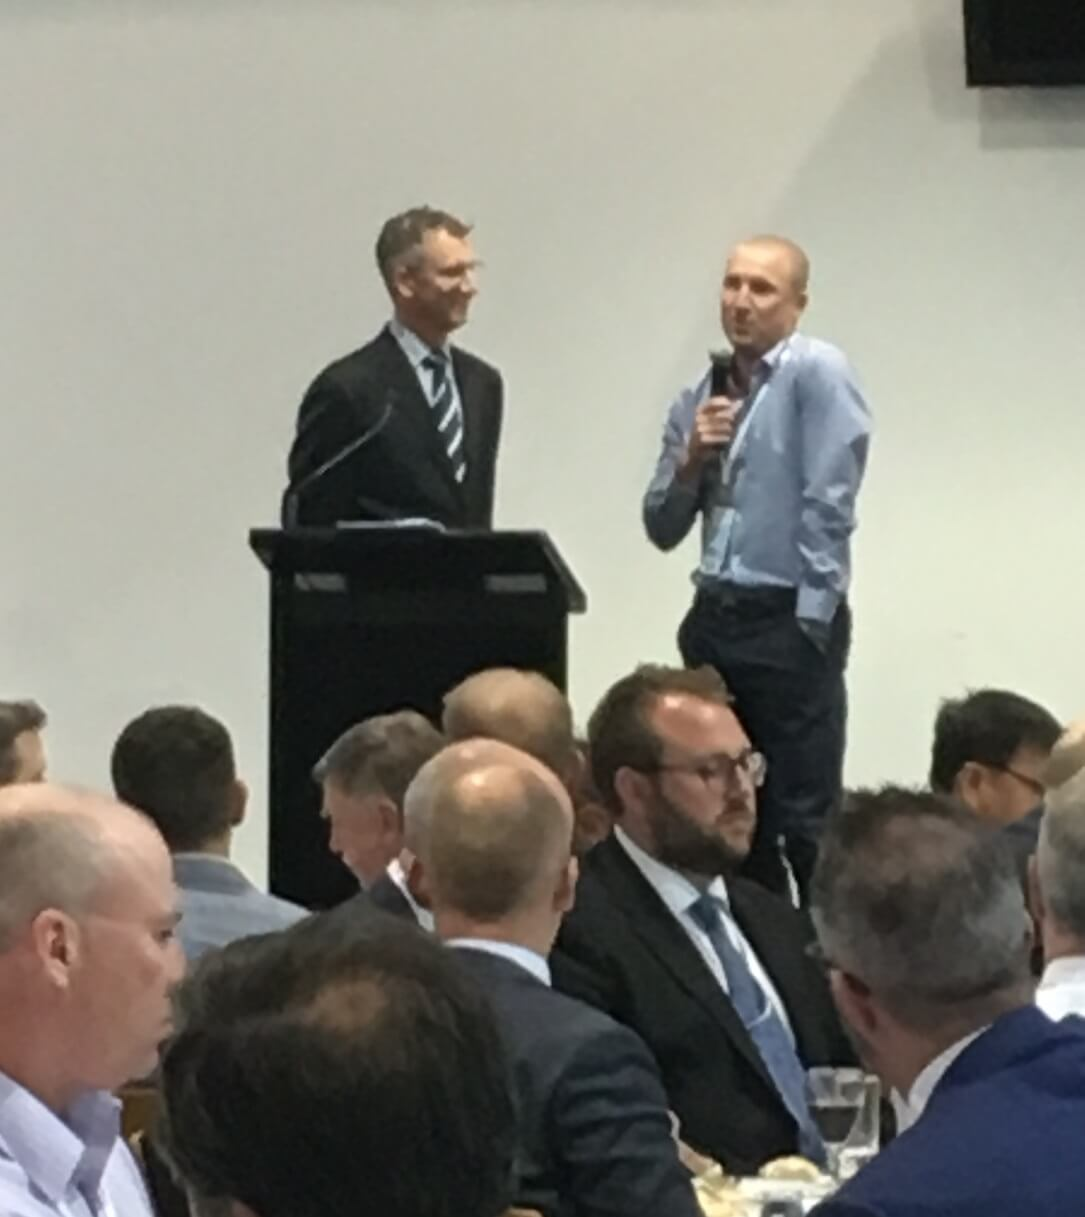 ODI 2016 Dinner Interval interview with Brad Haddin